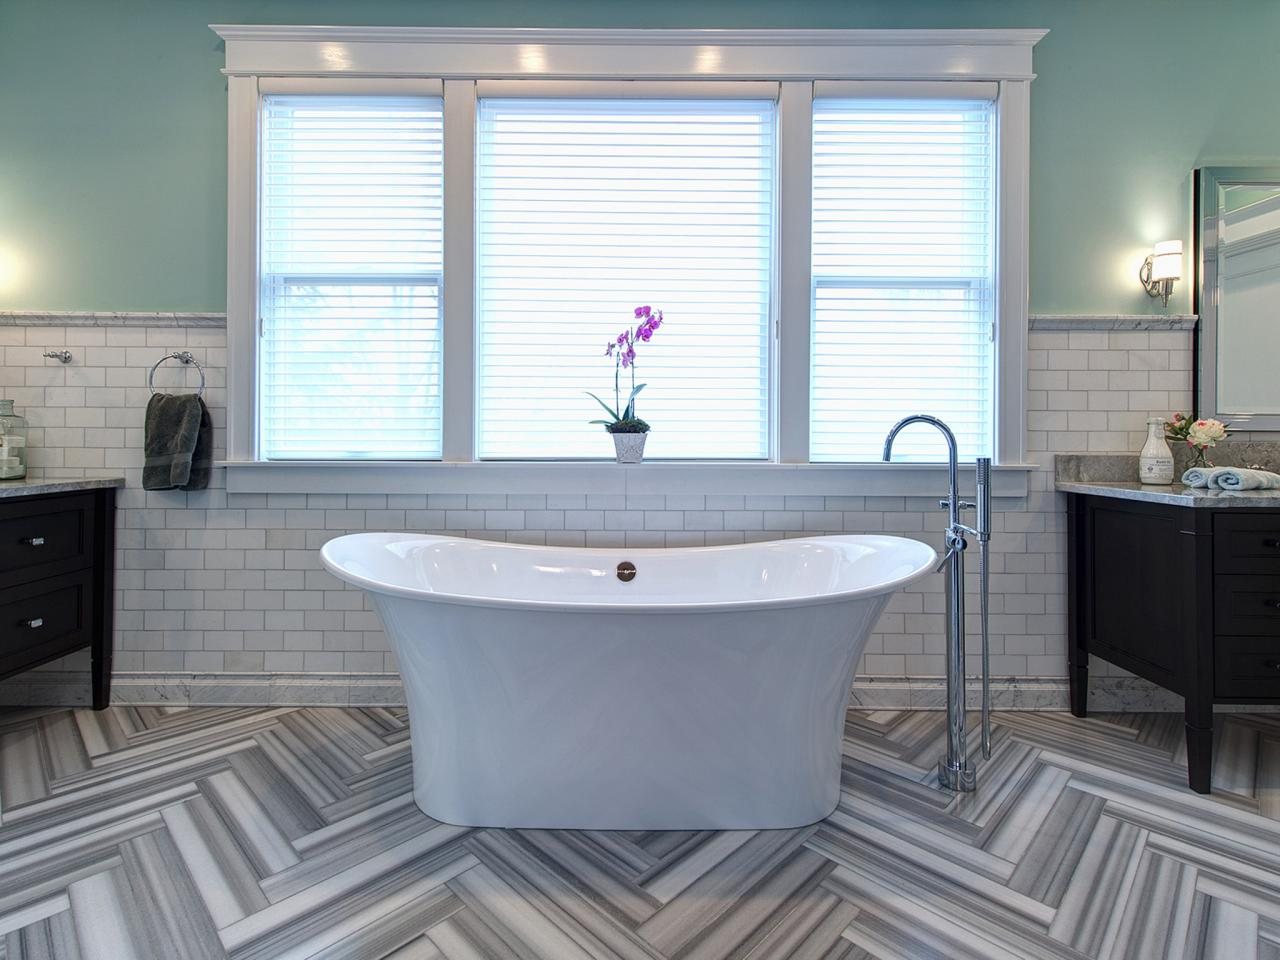 Wallmark homes designer bathroom published vancouver white bathroom tiles design ideas from our vancouver experts dailygadgetfo Images